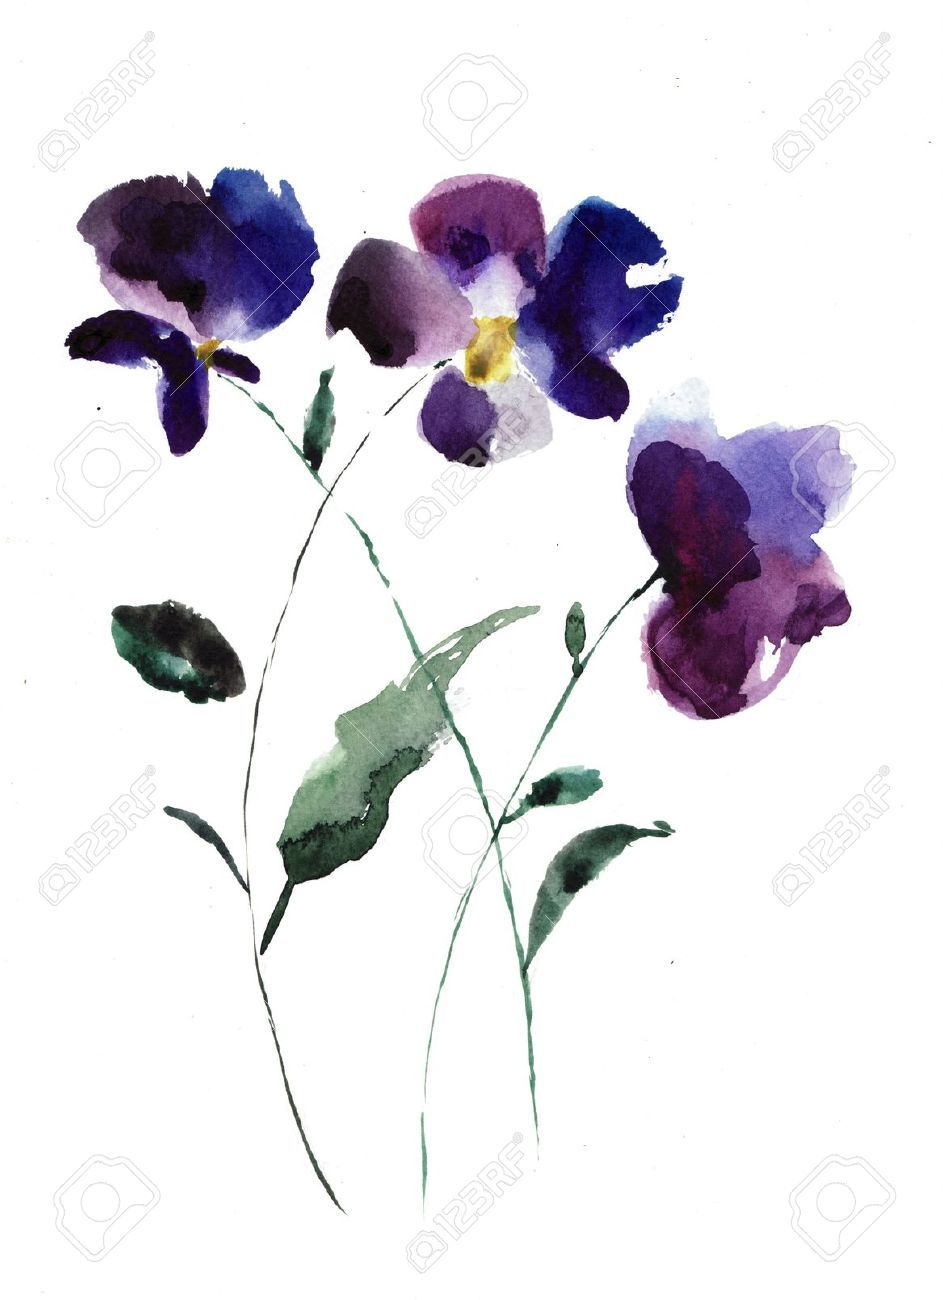 Line Drawing Violet : Watercolor illustration of violet flowers stock photo